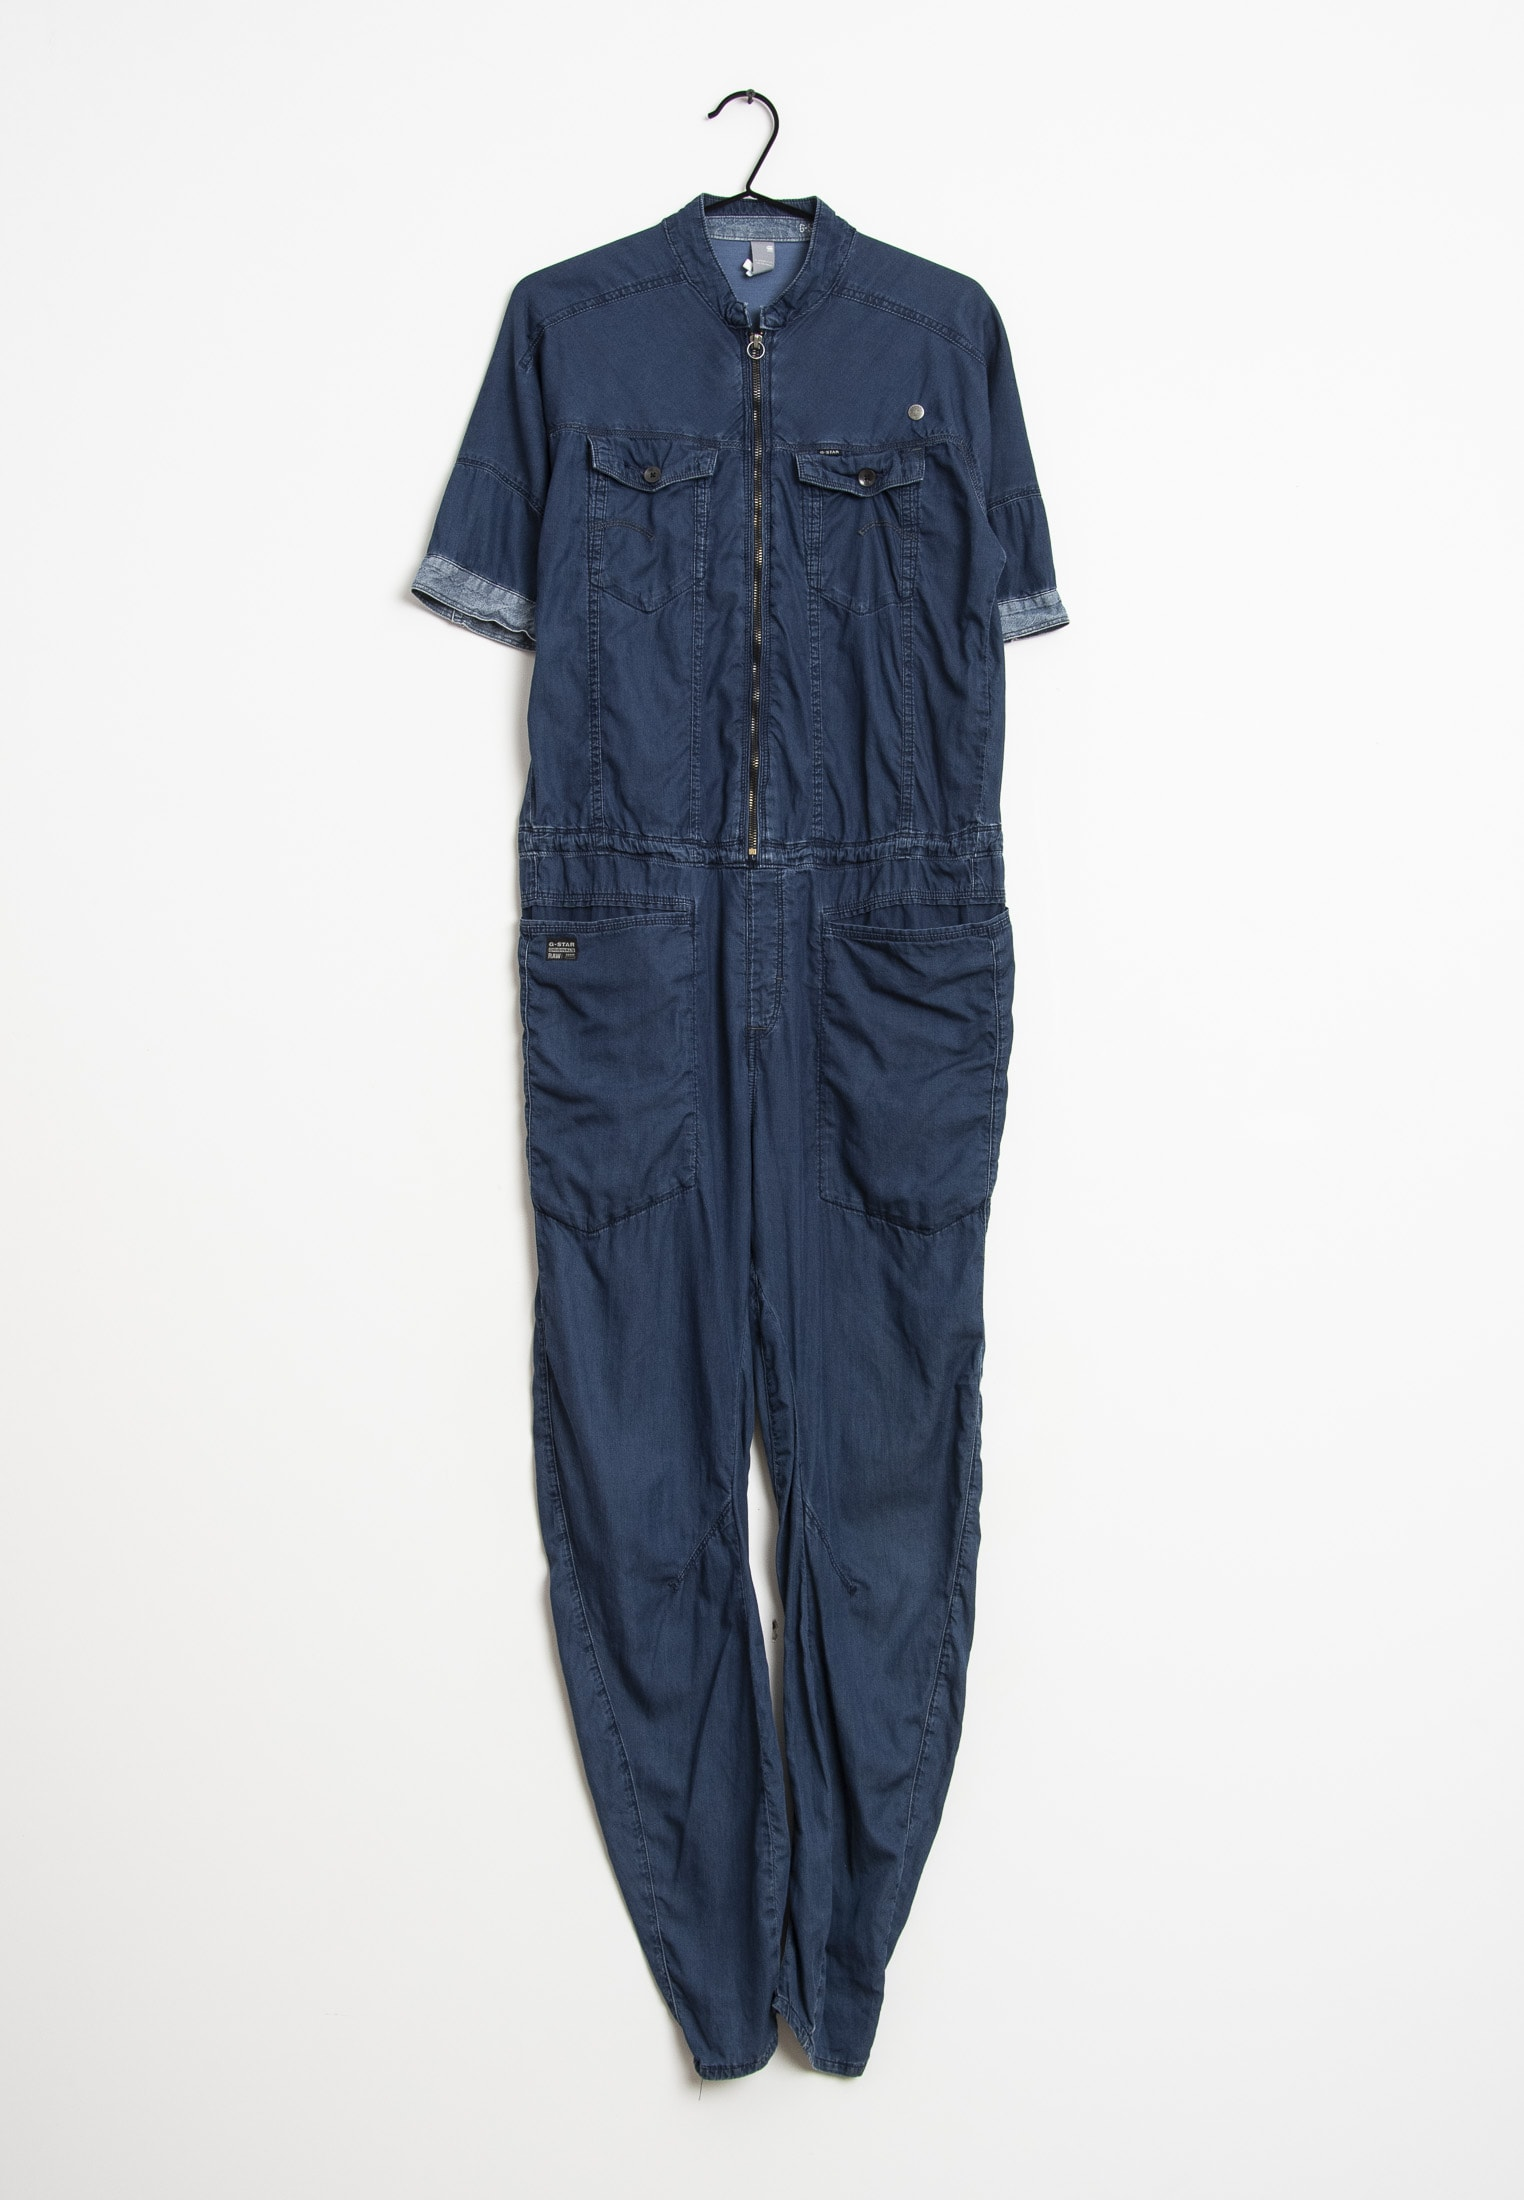 G-Star Jumpsuit / Overall Blau Gr.S